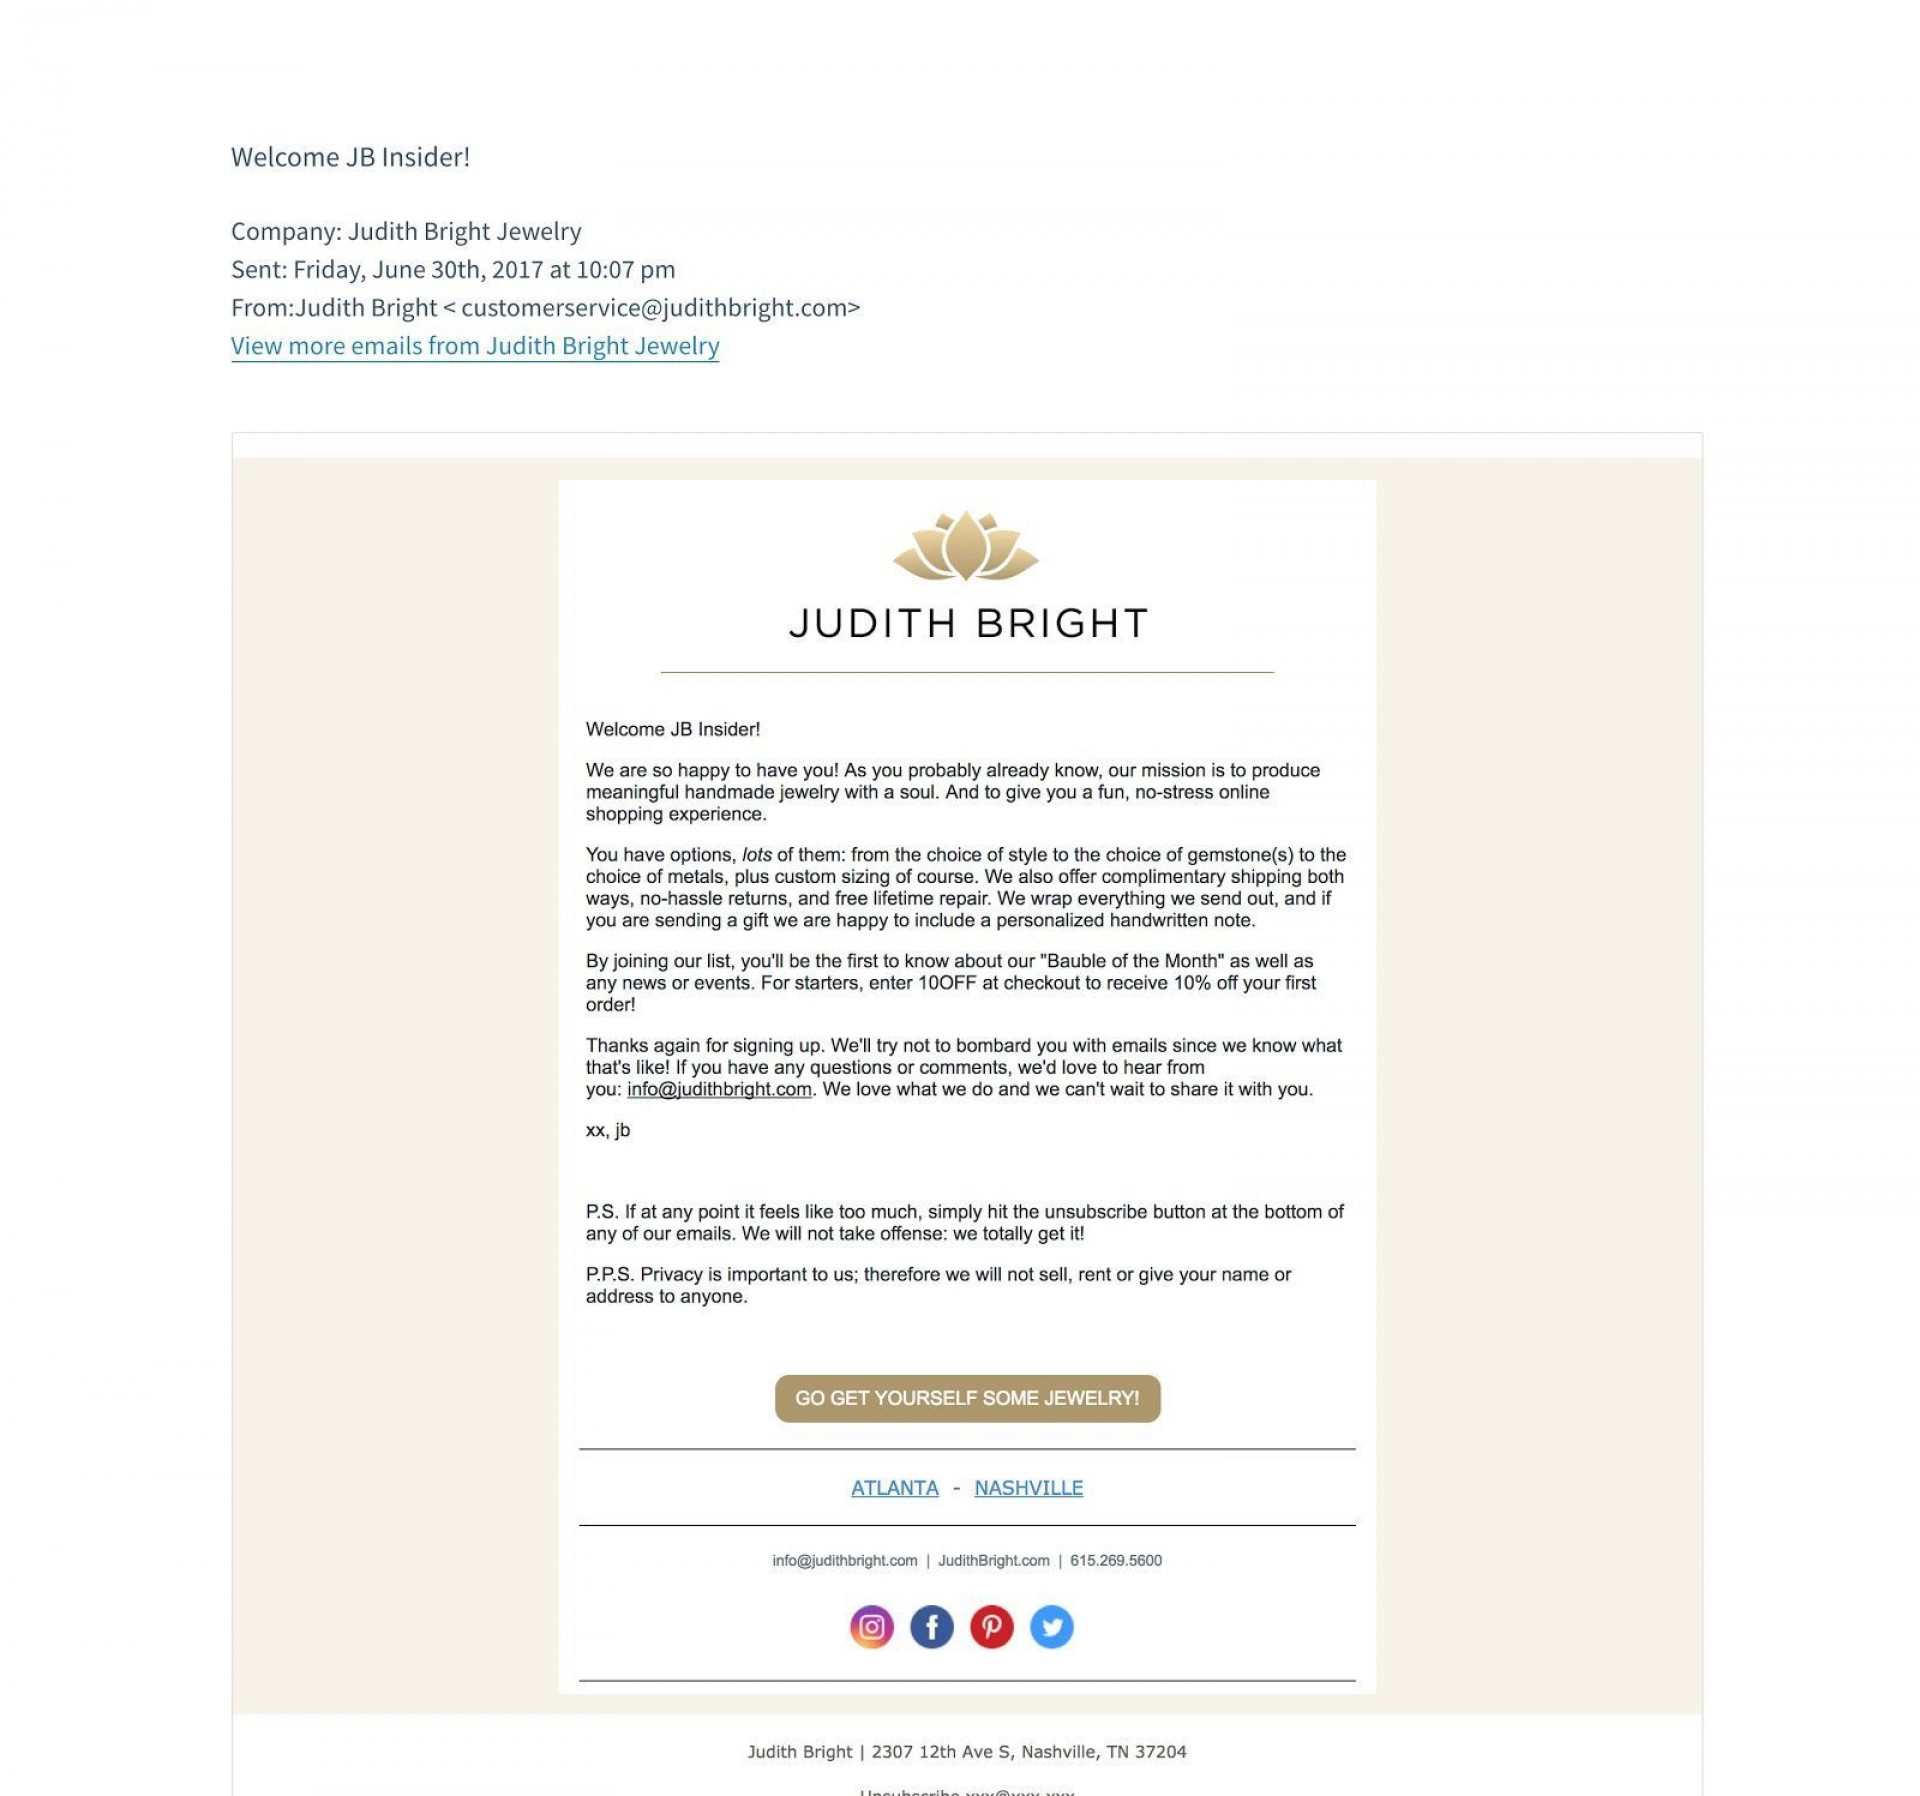 010 Marvelou Join Our Mailing List Template High Definition  Email1920